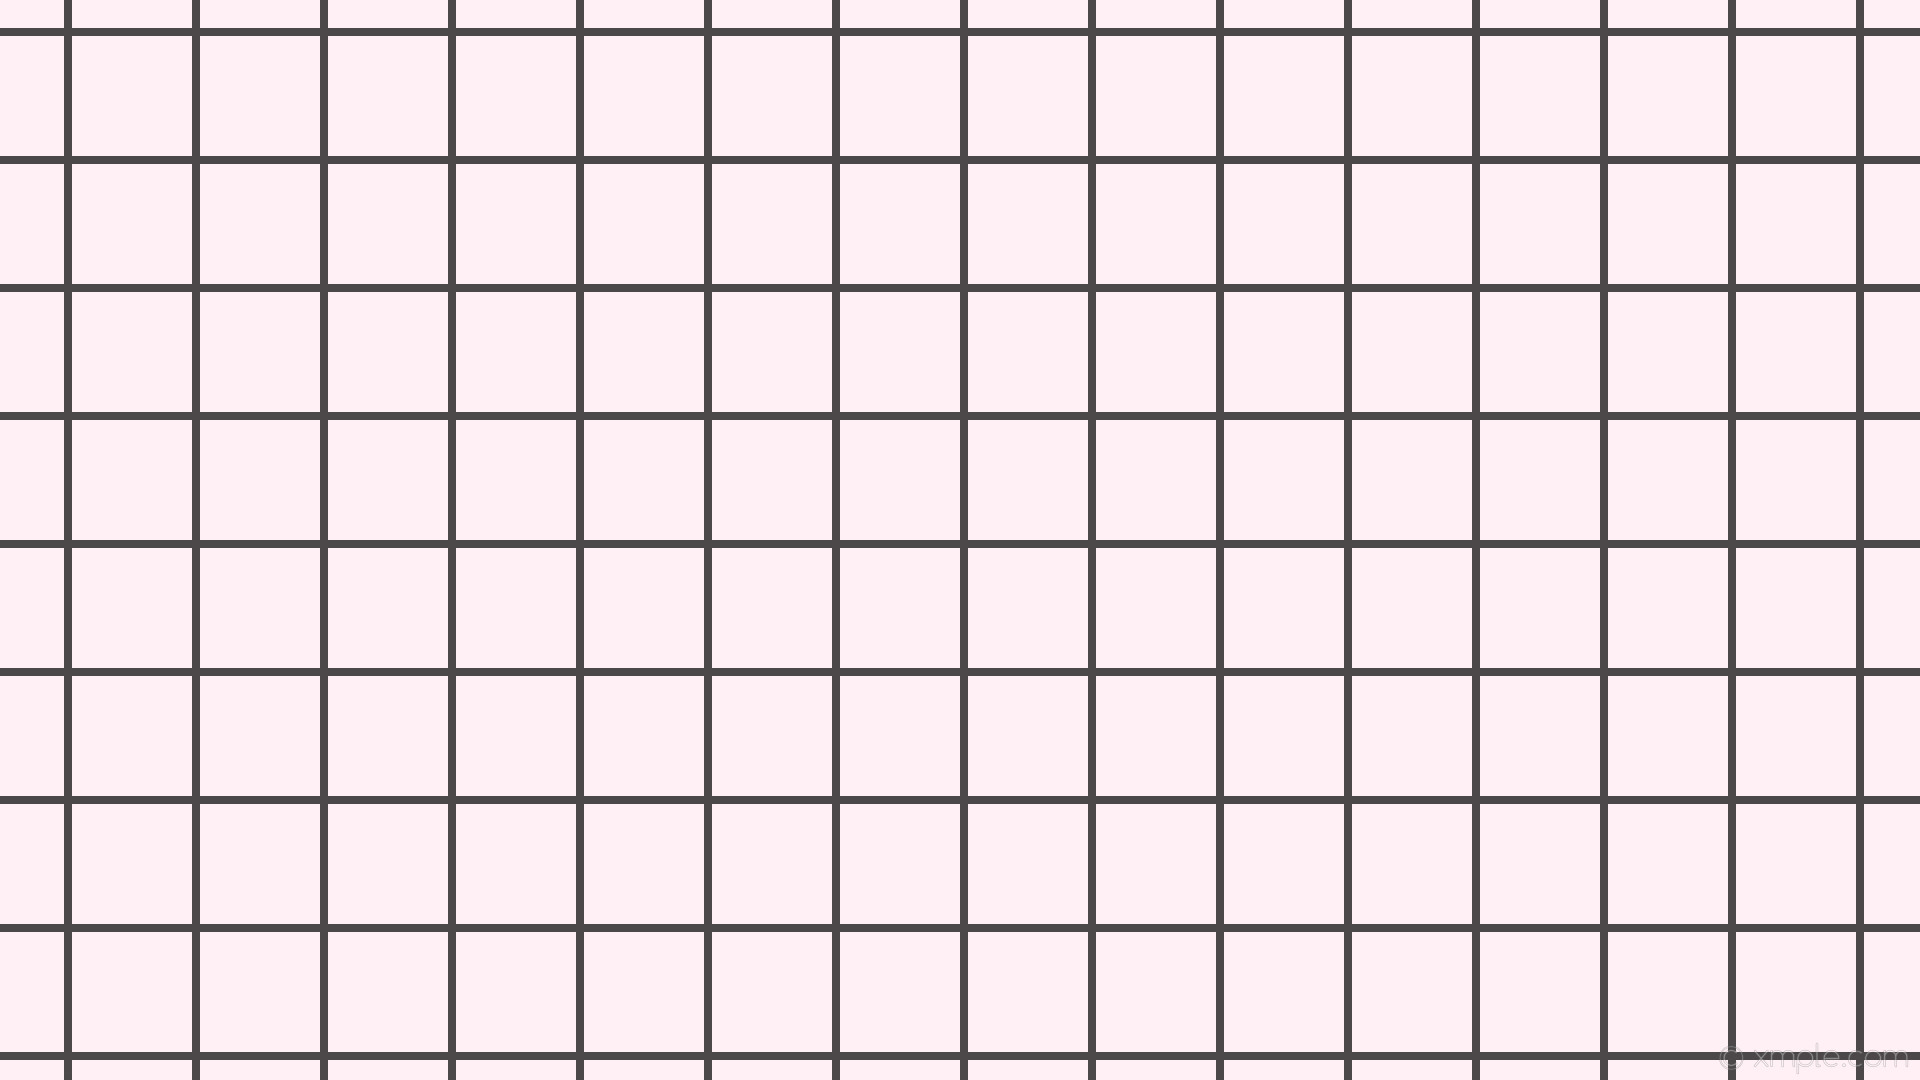 1920x1080 wallpaper white black graph paper grid lavender blush #fff0f5 #000000 0°  8px 128px